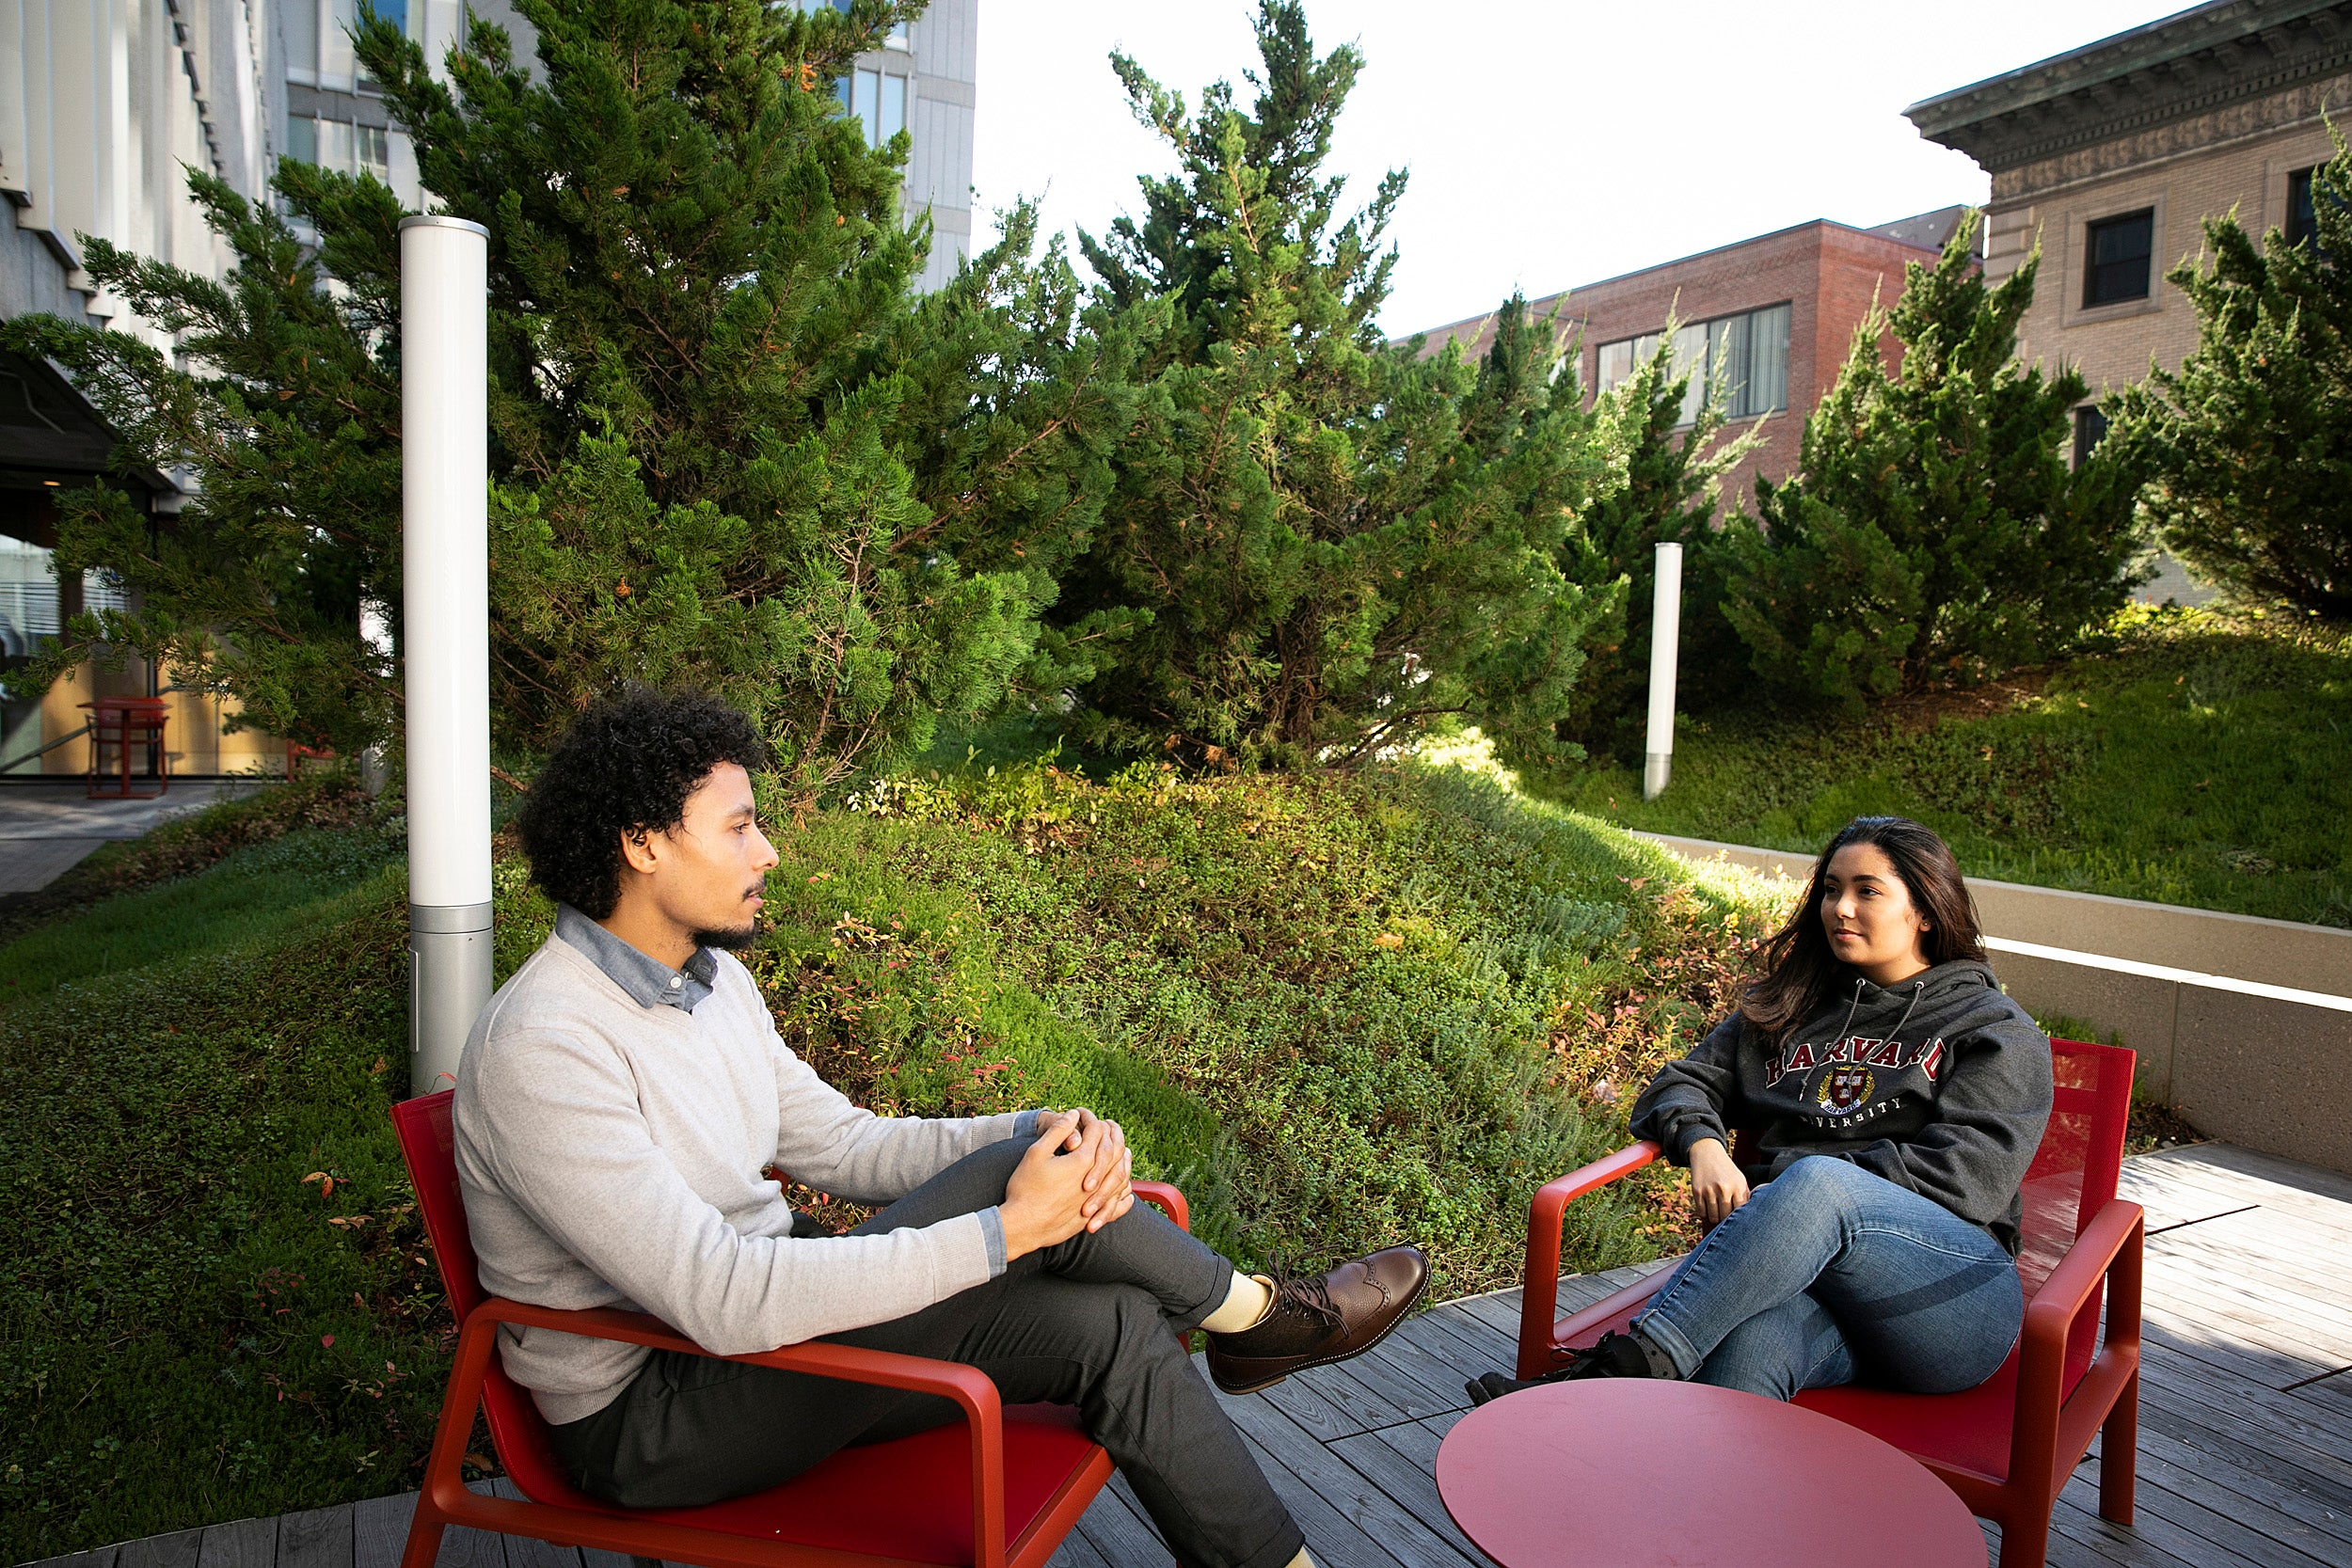 Two Harvard alums sitting in chairs